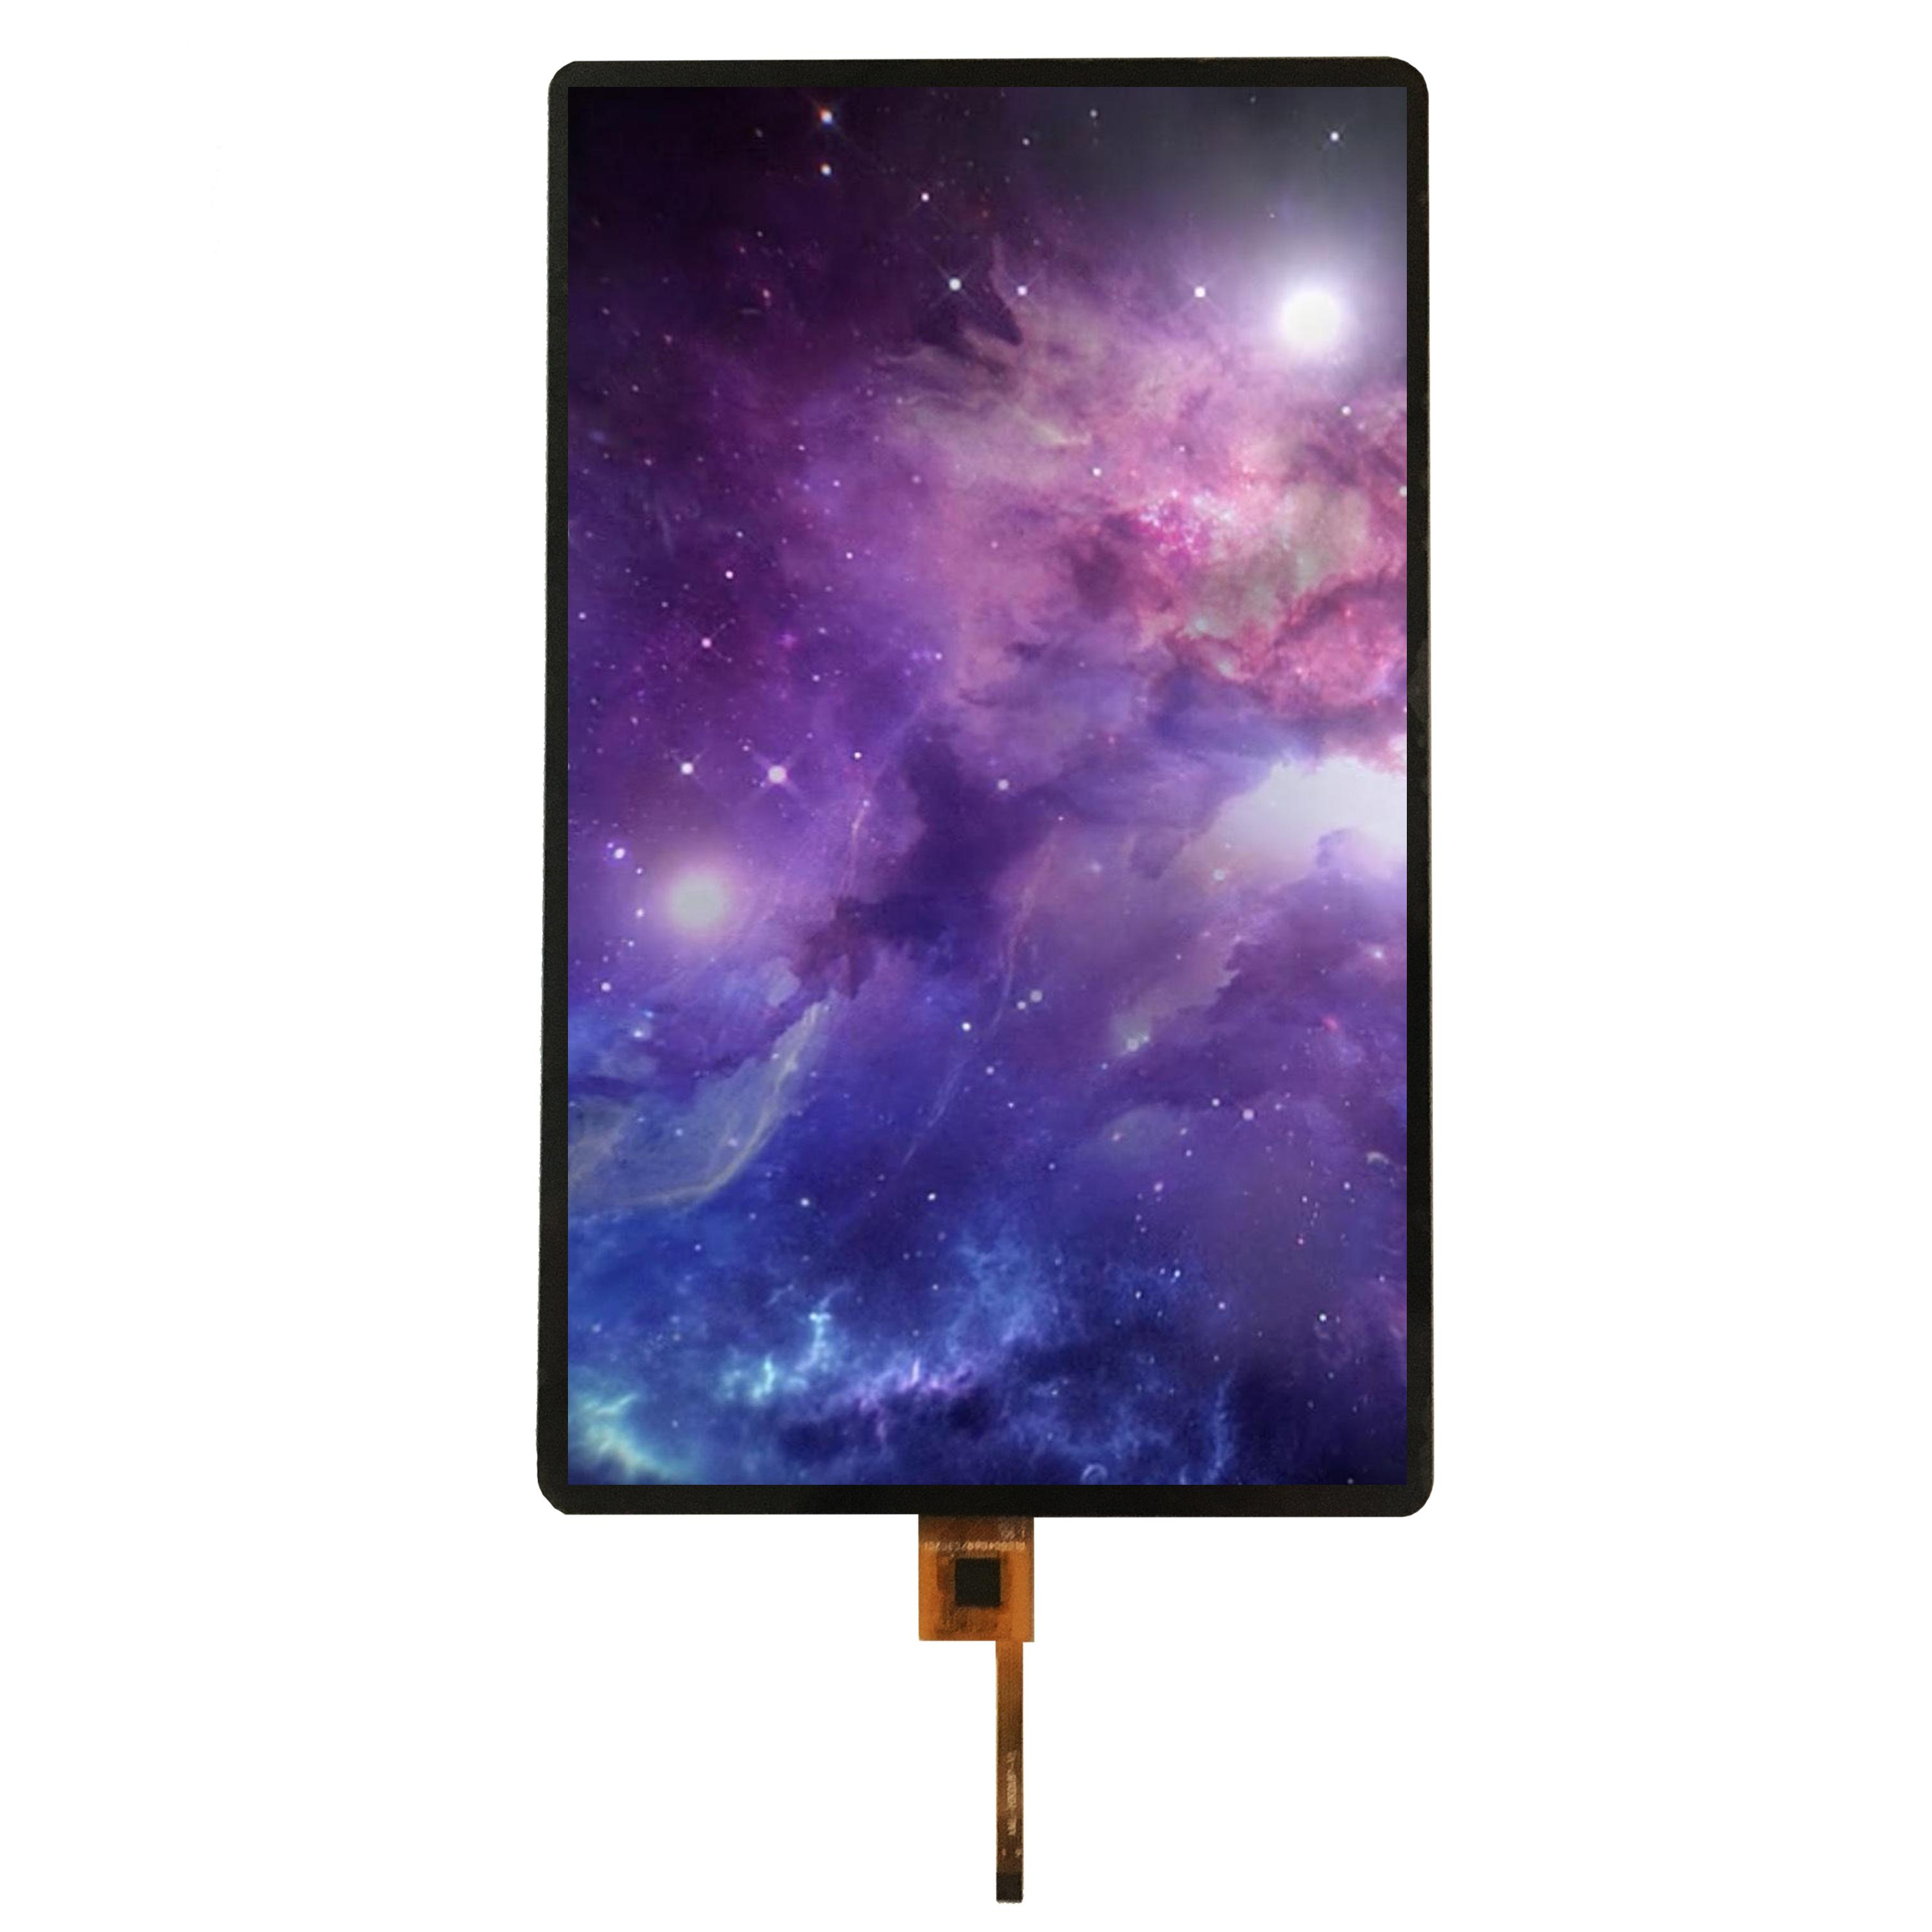 8 inch 800*1280 IPS TFT LCD Module Screen with MIPI interface display and CTP touch panel